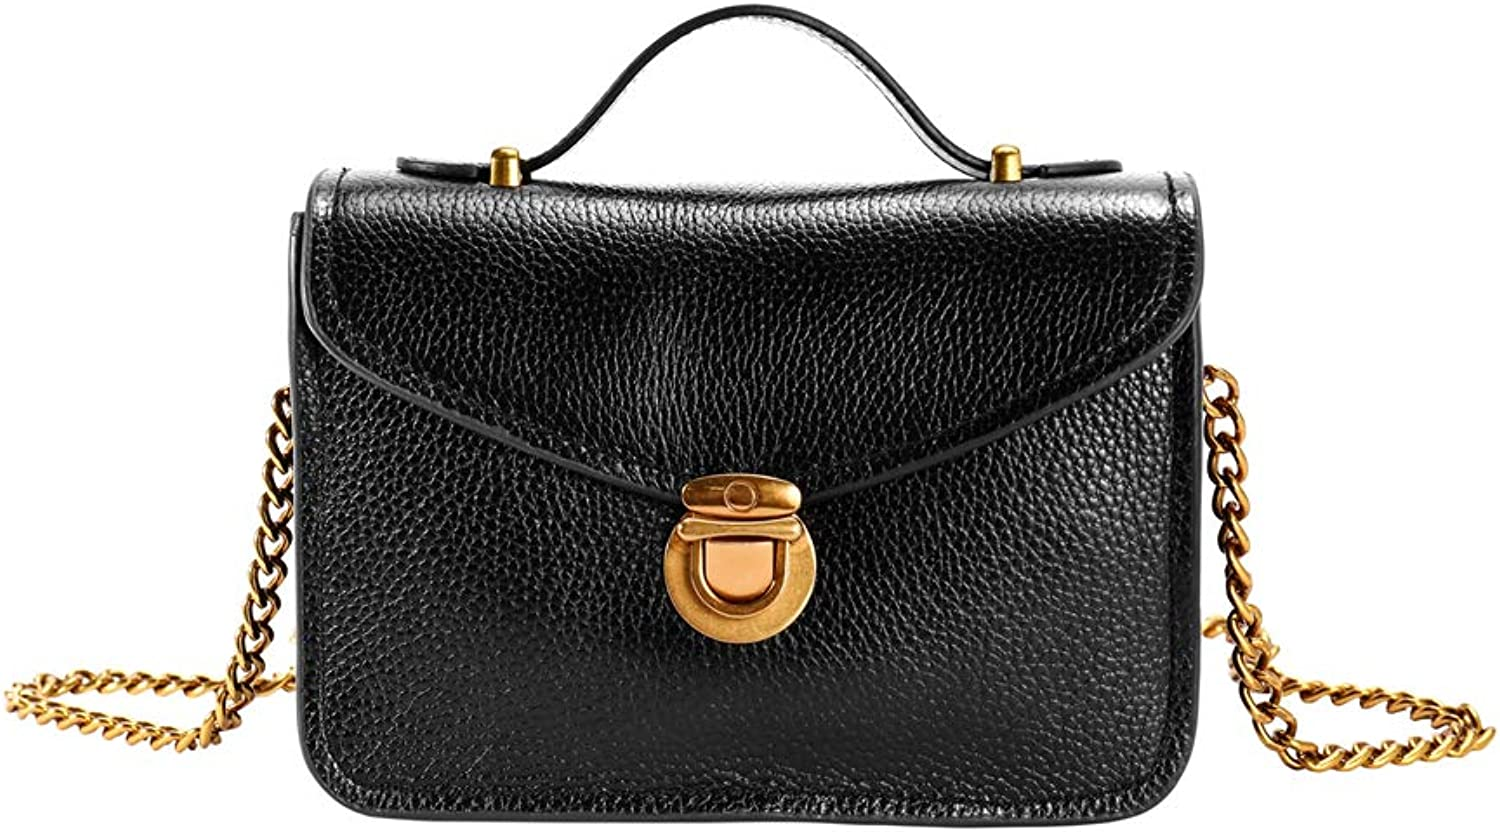 Genda 2Archer Women Evening Party Leather Chain Handbag